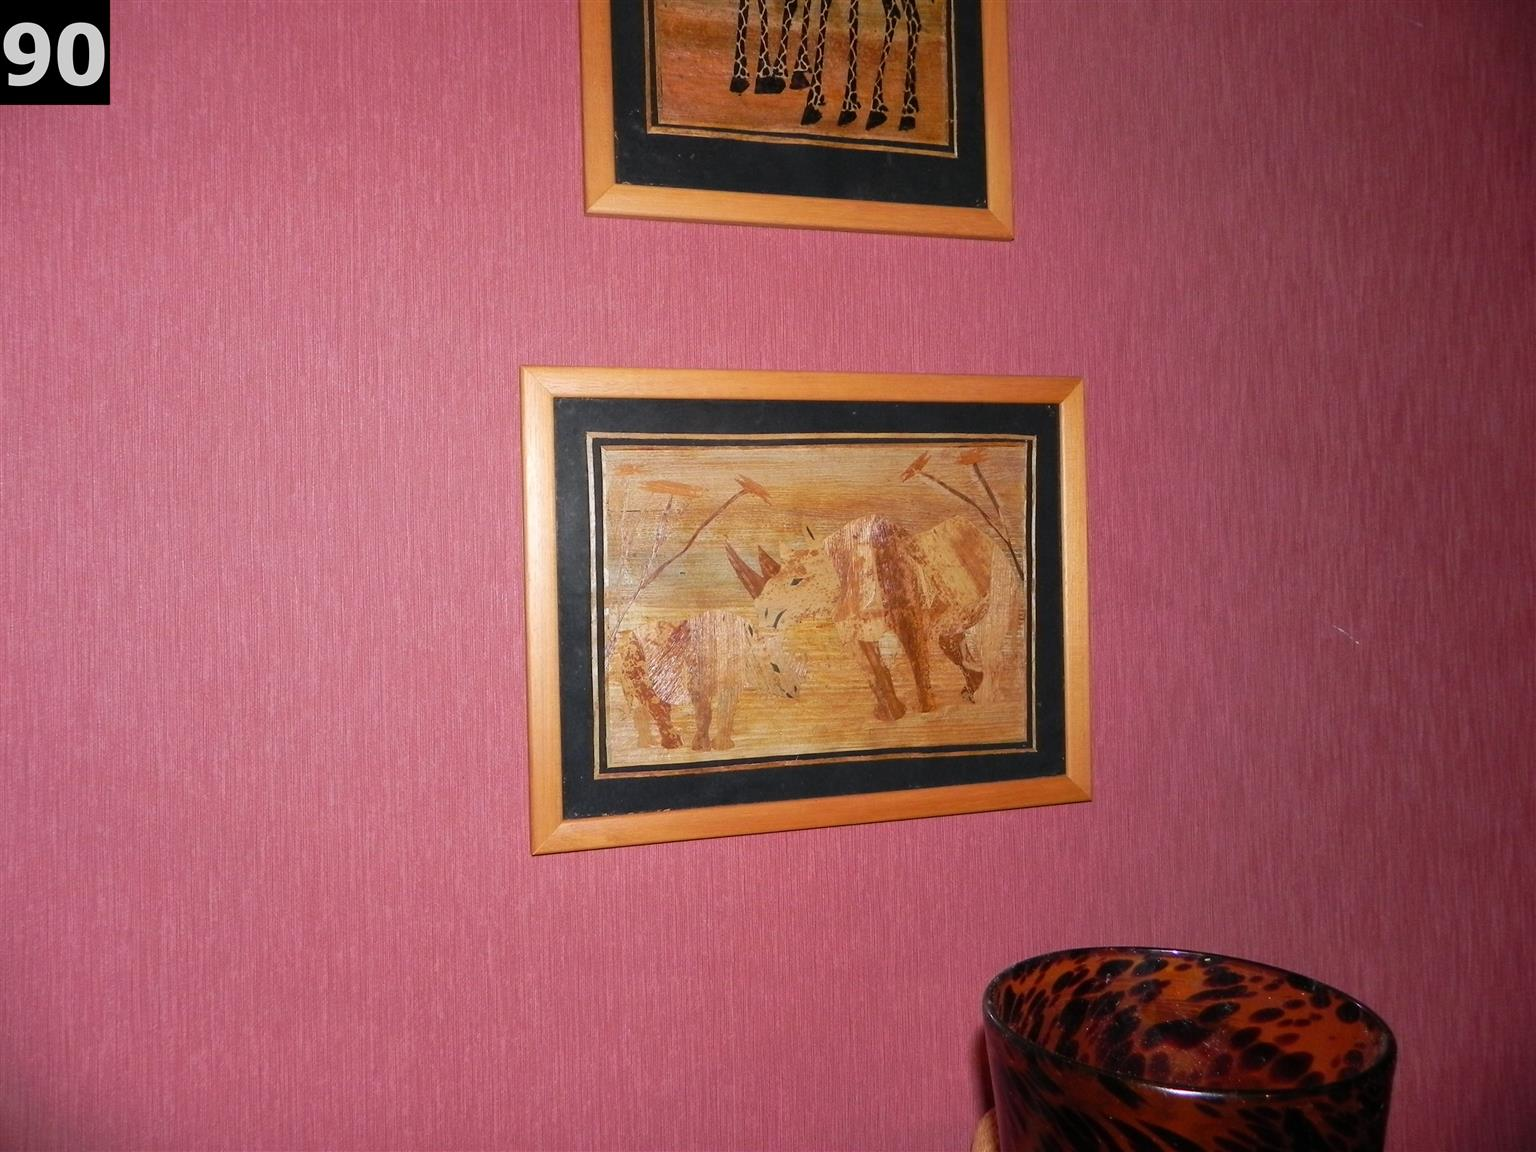 Large wall hanging - African art scene